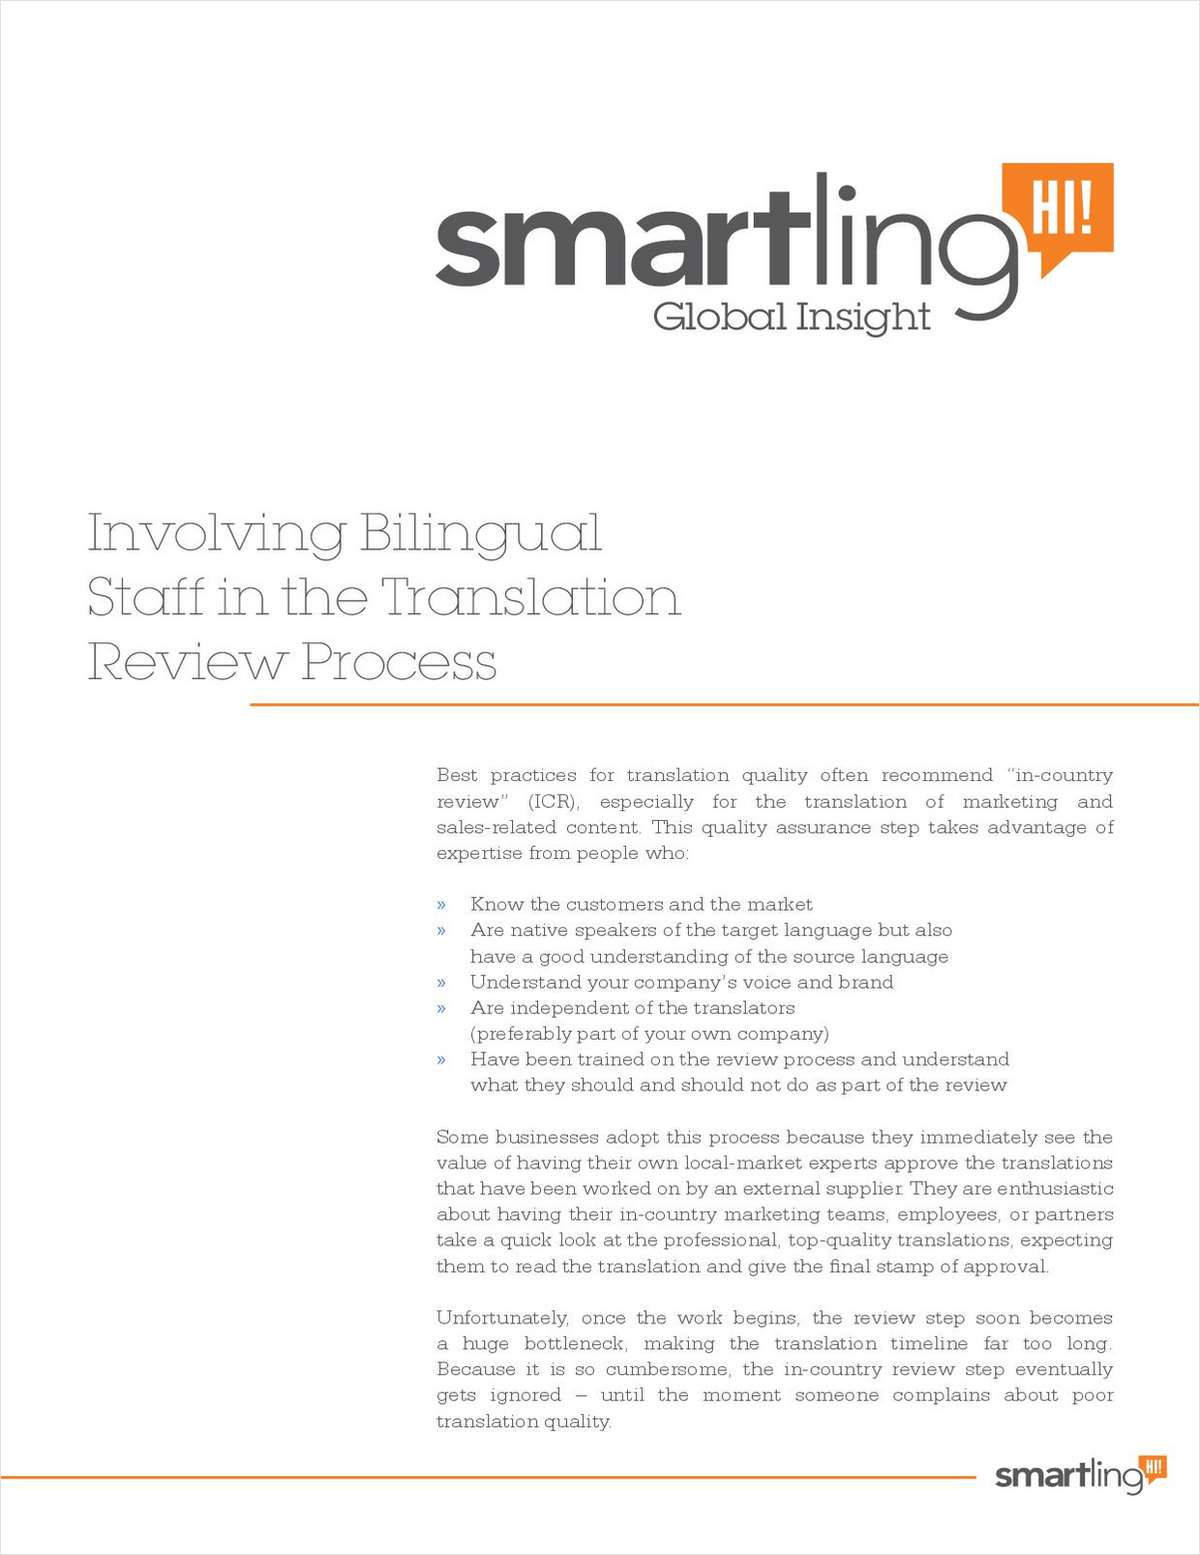 Involving Bilingual Staff in the Translation Review Process